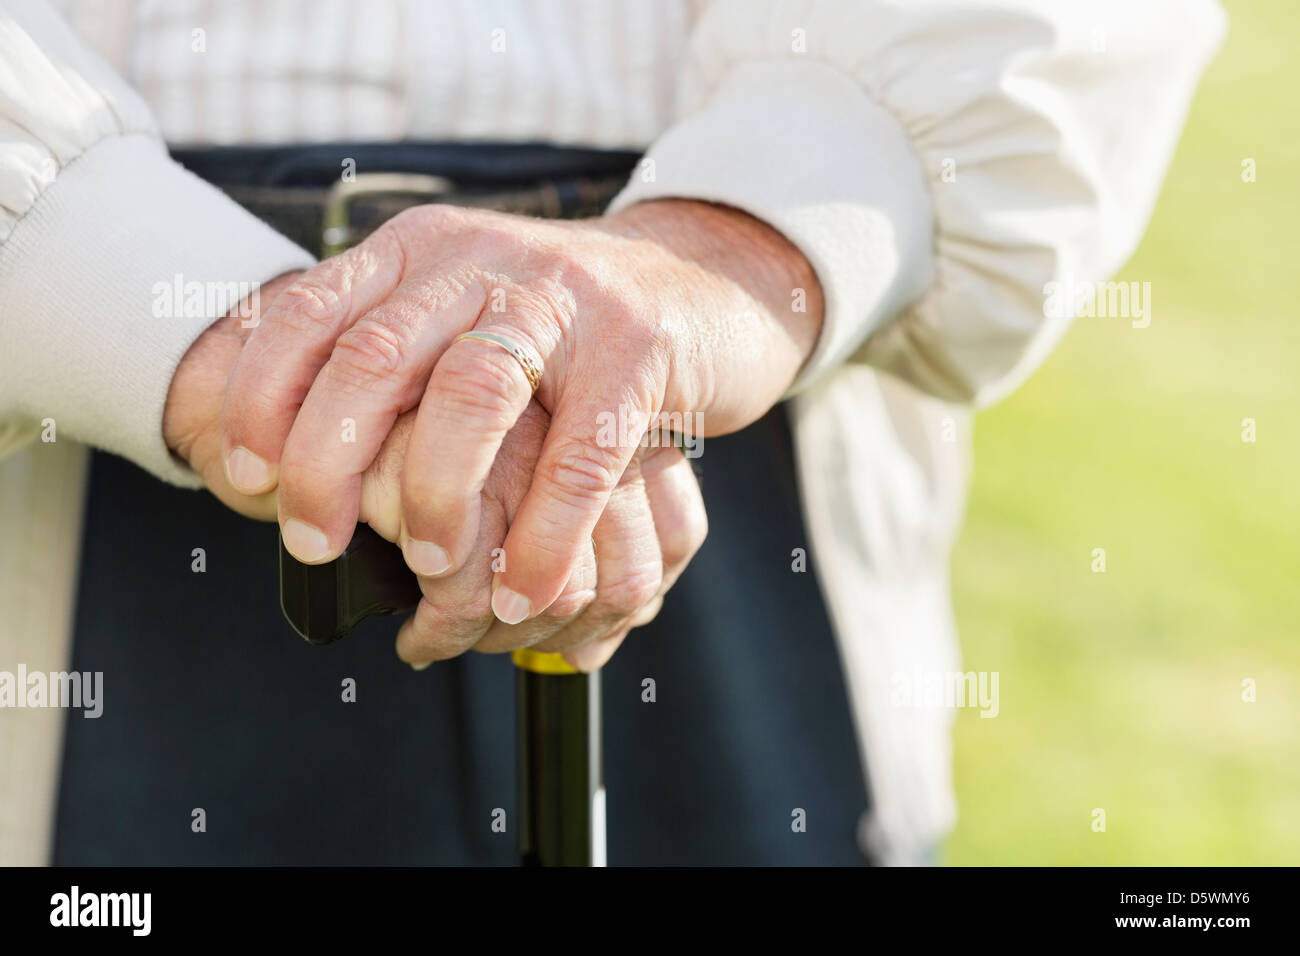 Close up of older man's hands on cane - Stock Image